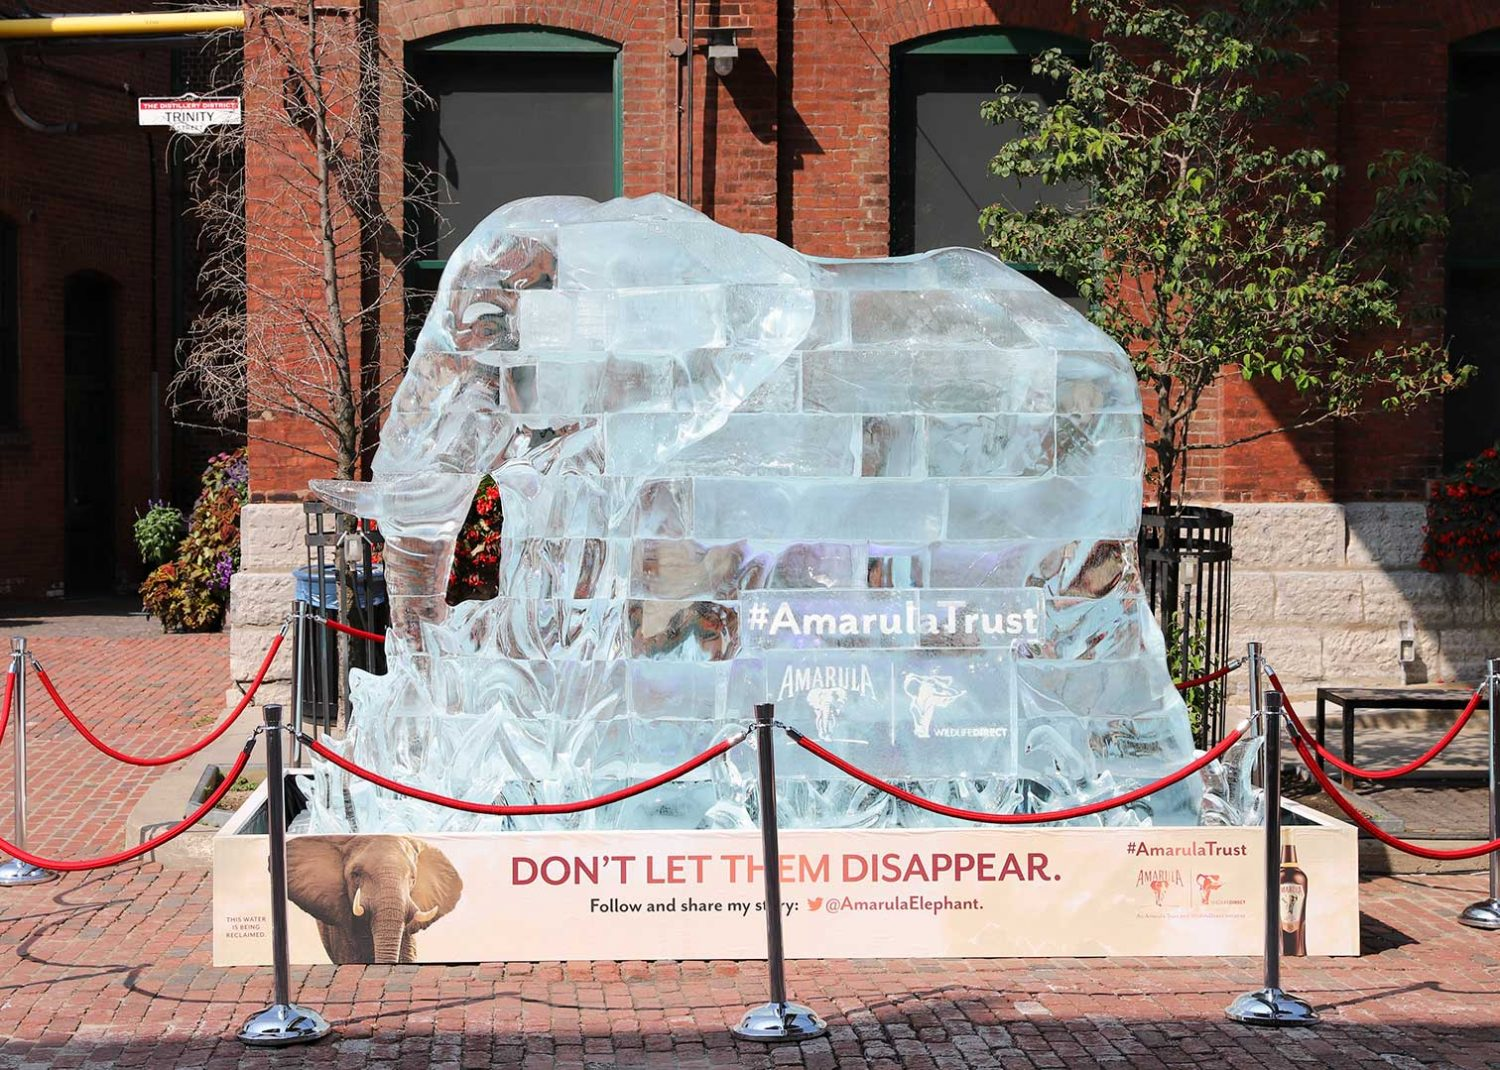 Amarula elephant ice sculpture